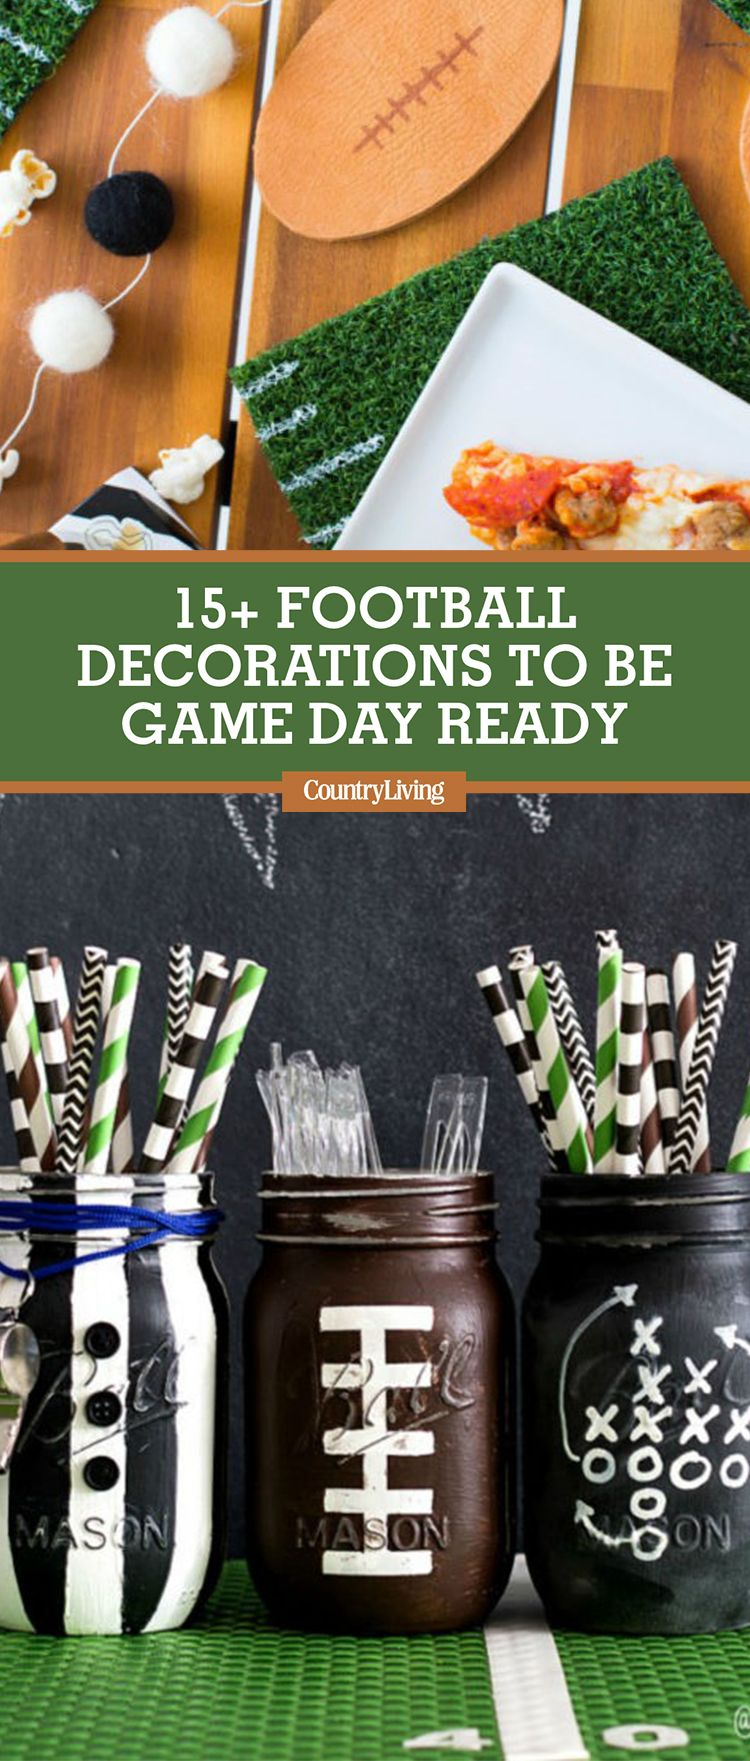 day partycheap bowl supplies htm football tablecover s decorations party game decor nfl plastic super